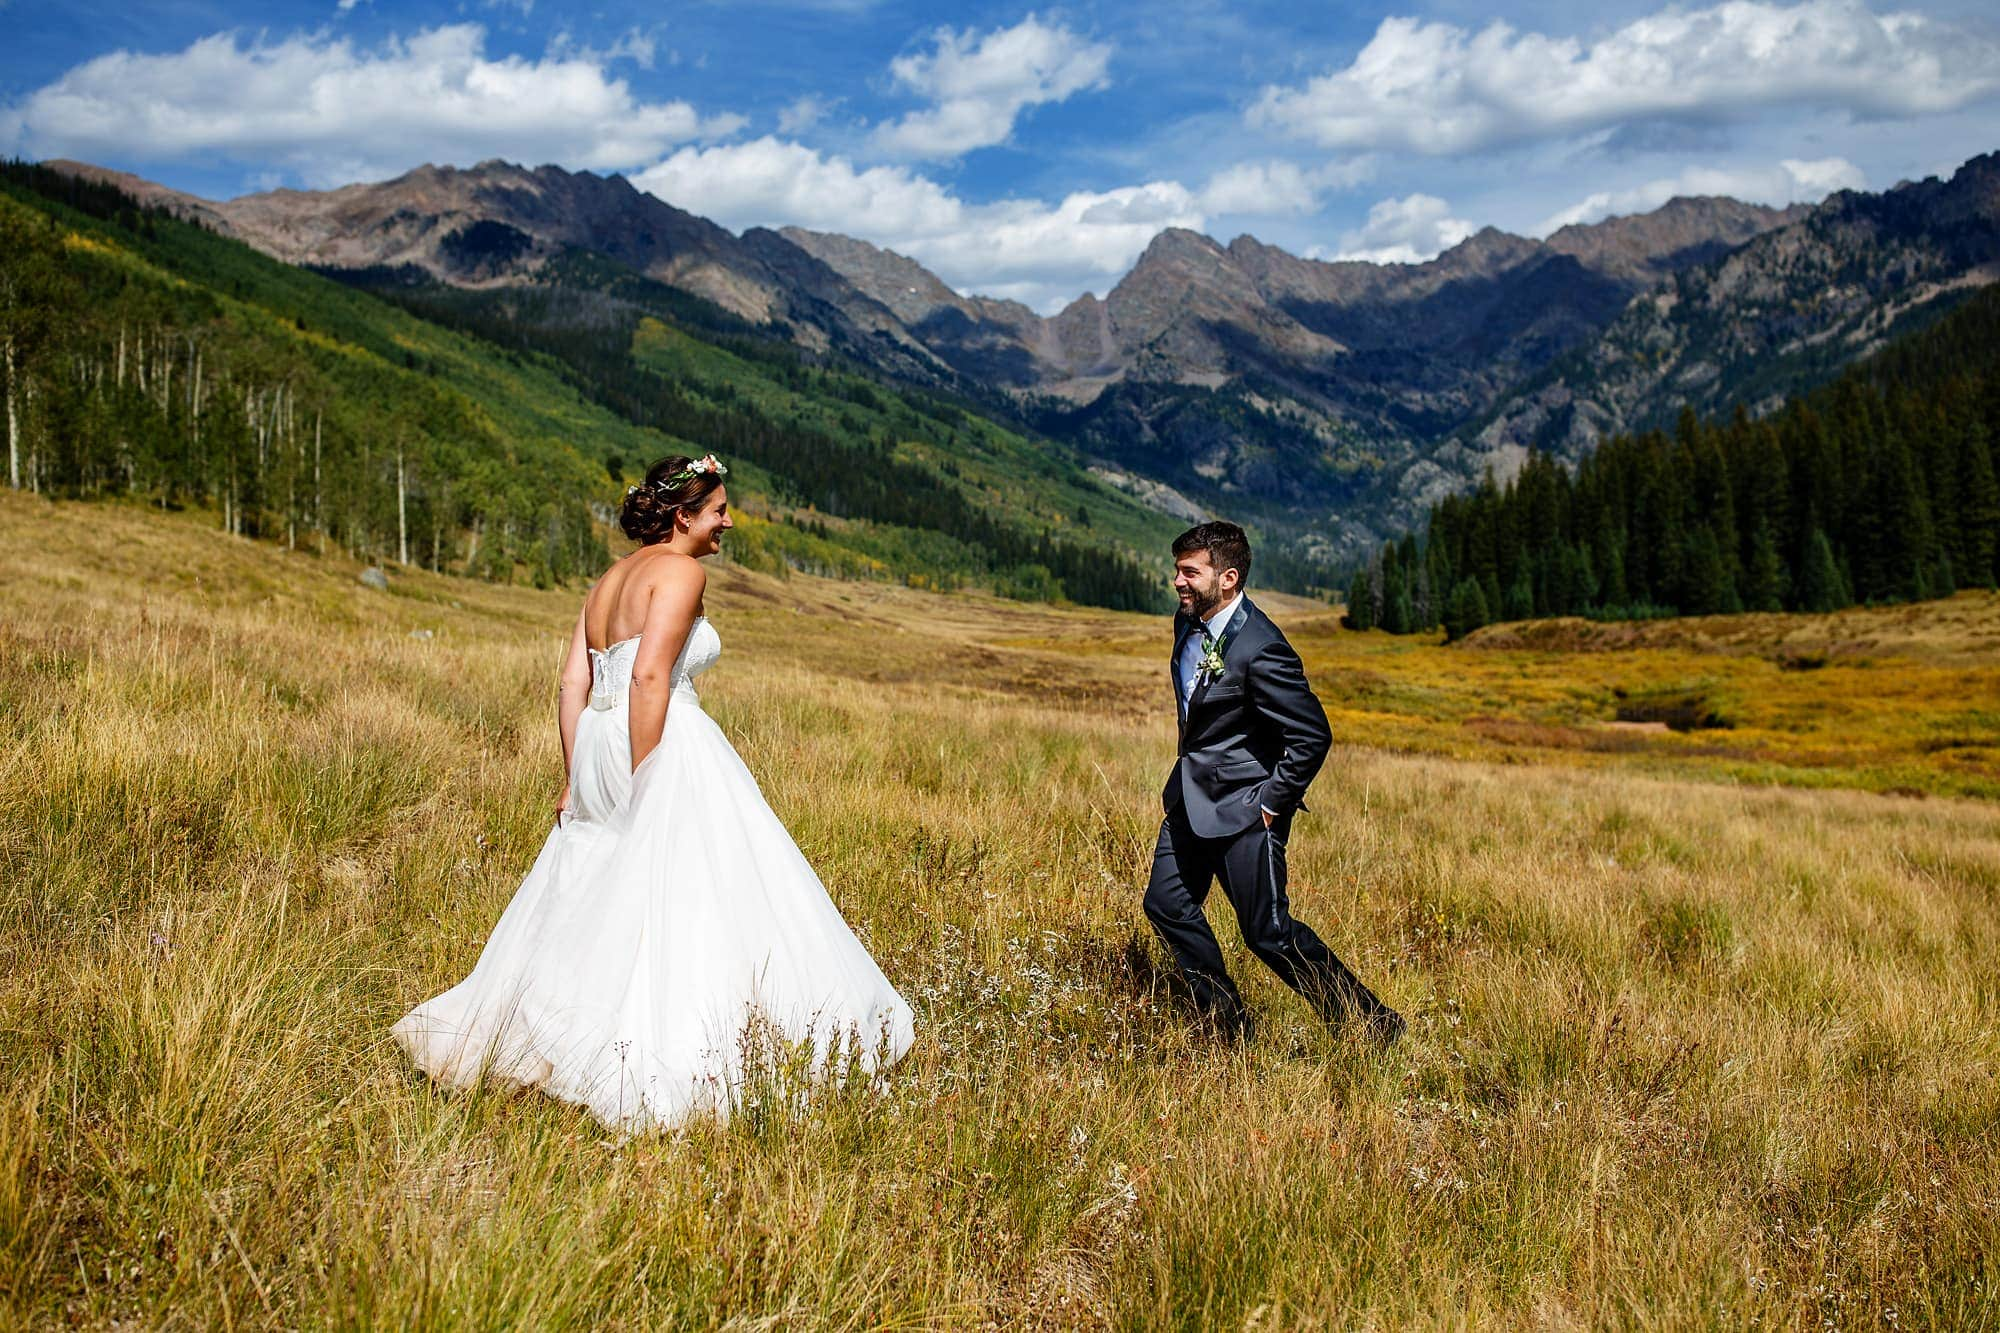 Becky and Brian share a moment during their first look at Piney River Ranch in front of the Gore mountain range.